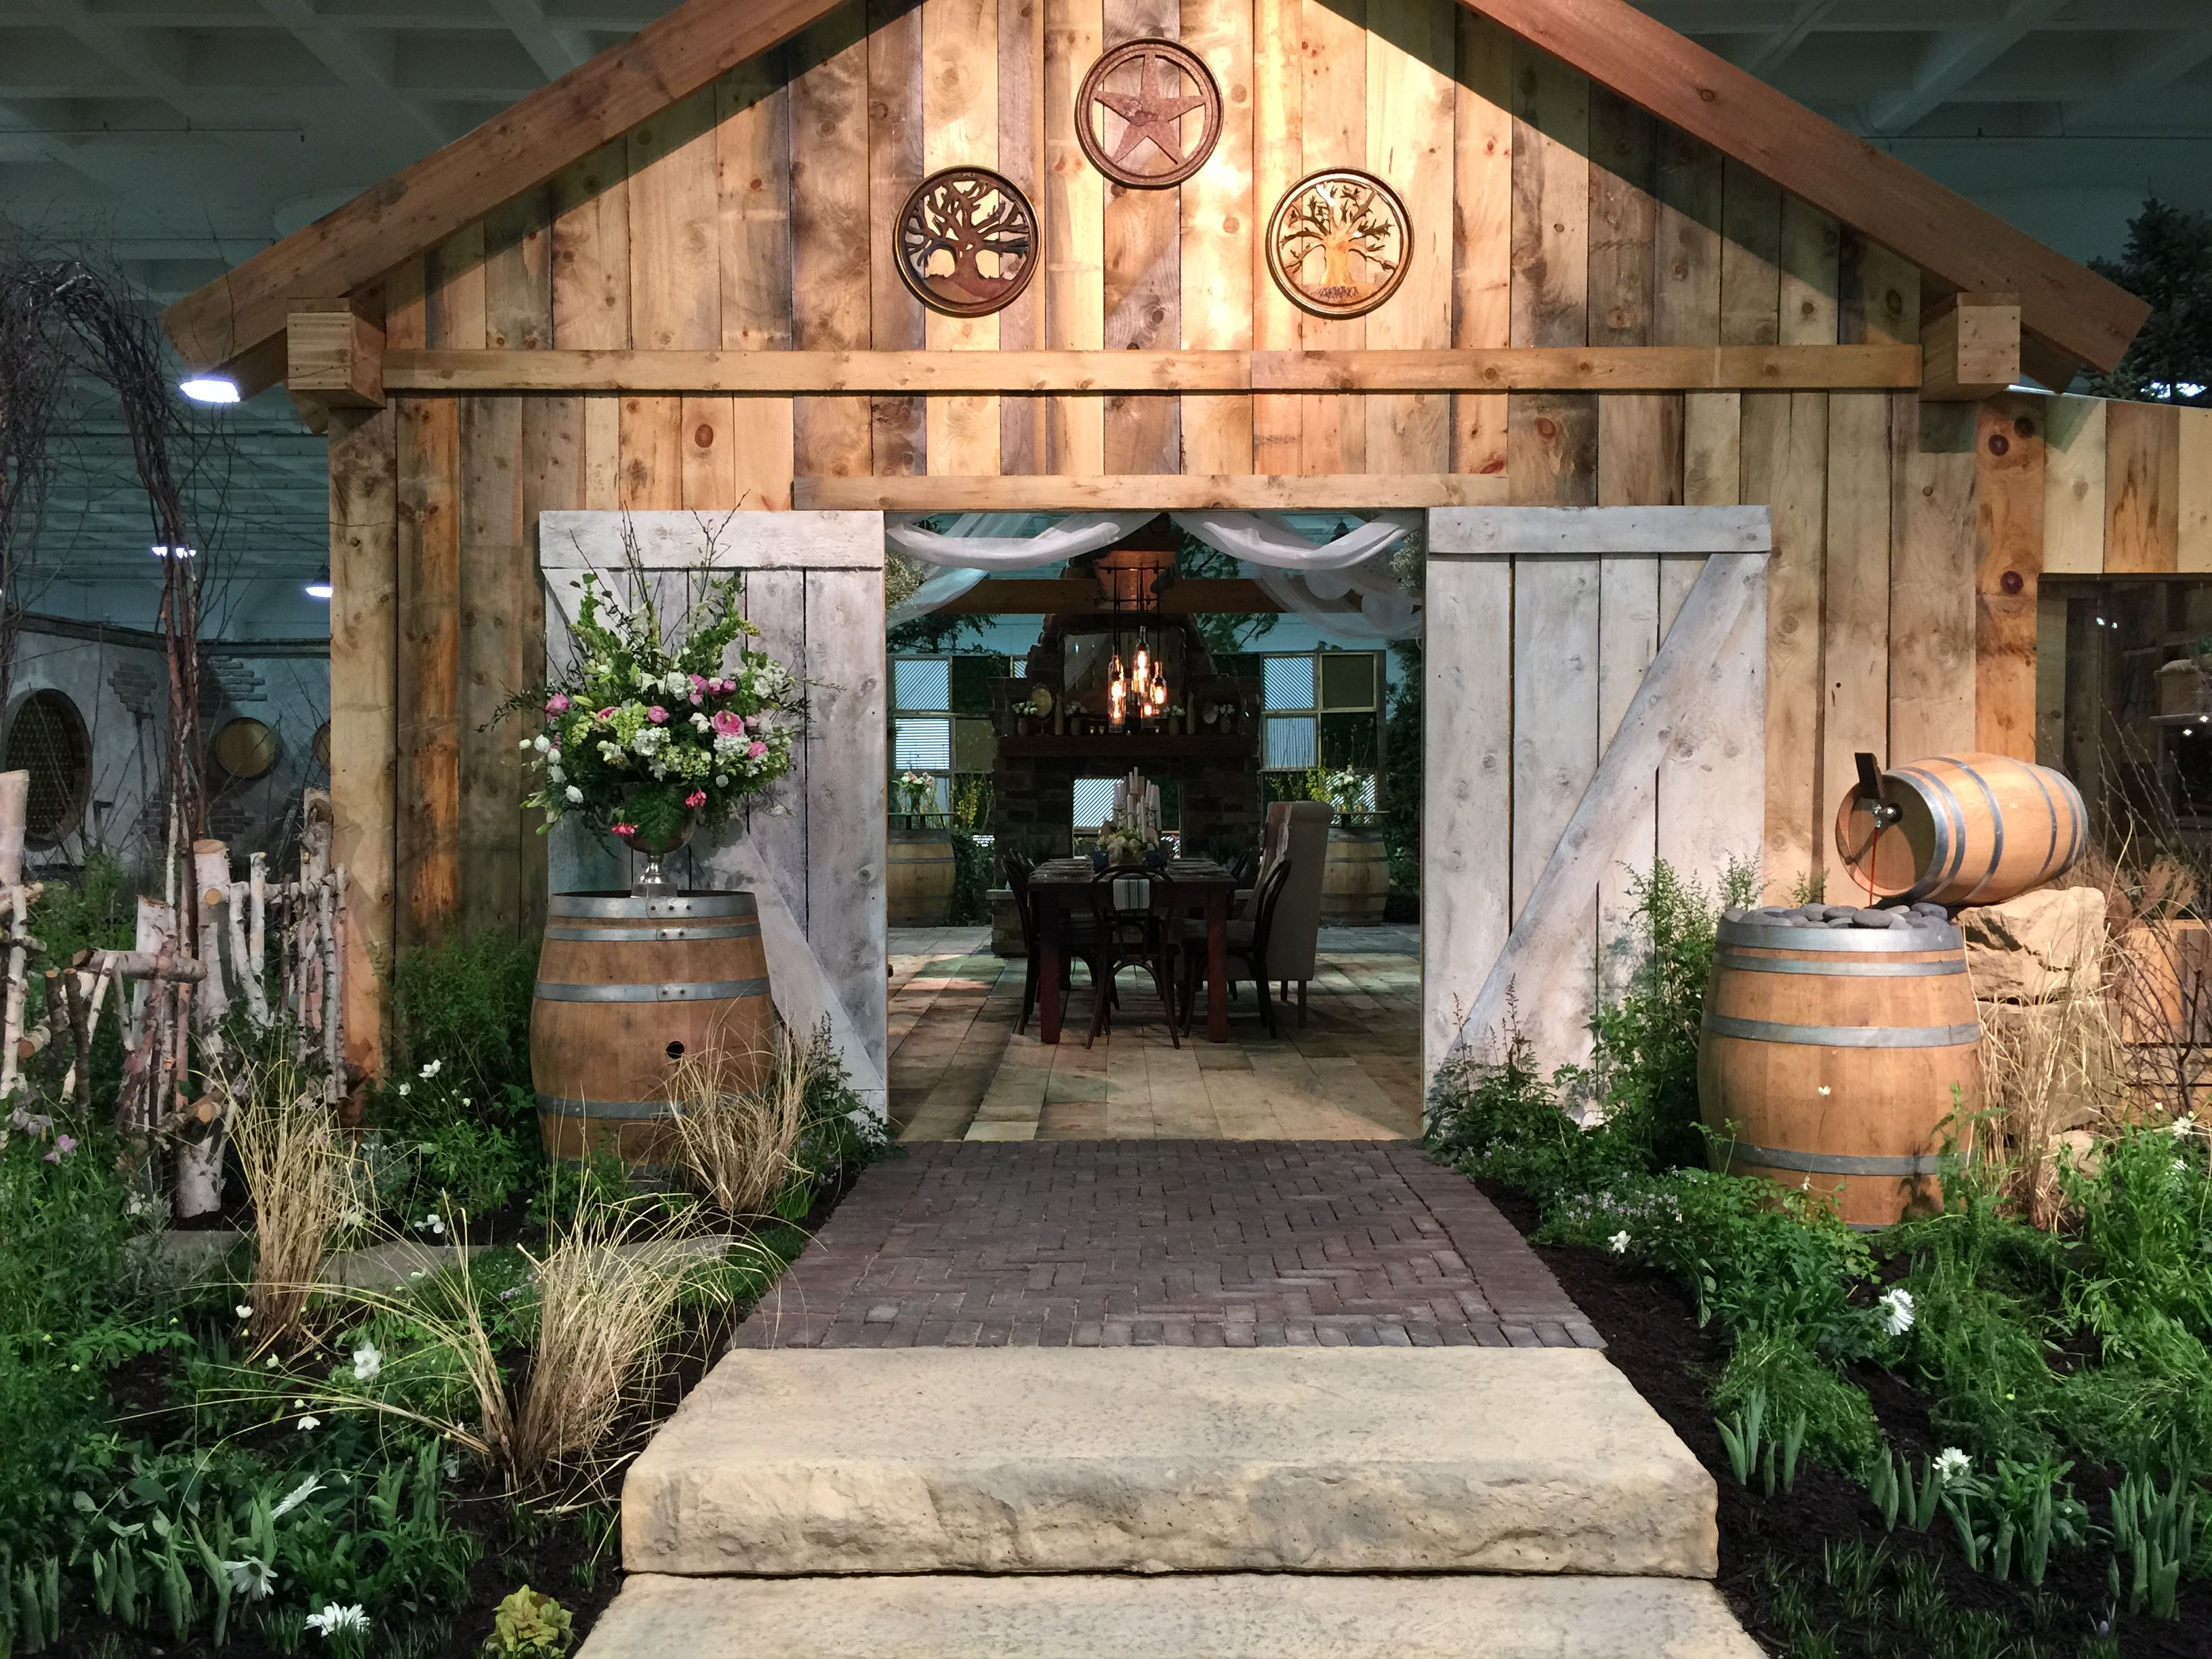 Cleveland 2016 Home And Garden Show Just Started! Here Is A Spring Flower  Vineyard Wedding